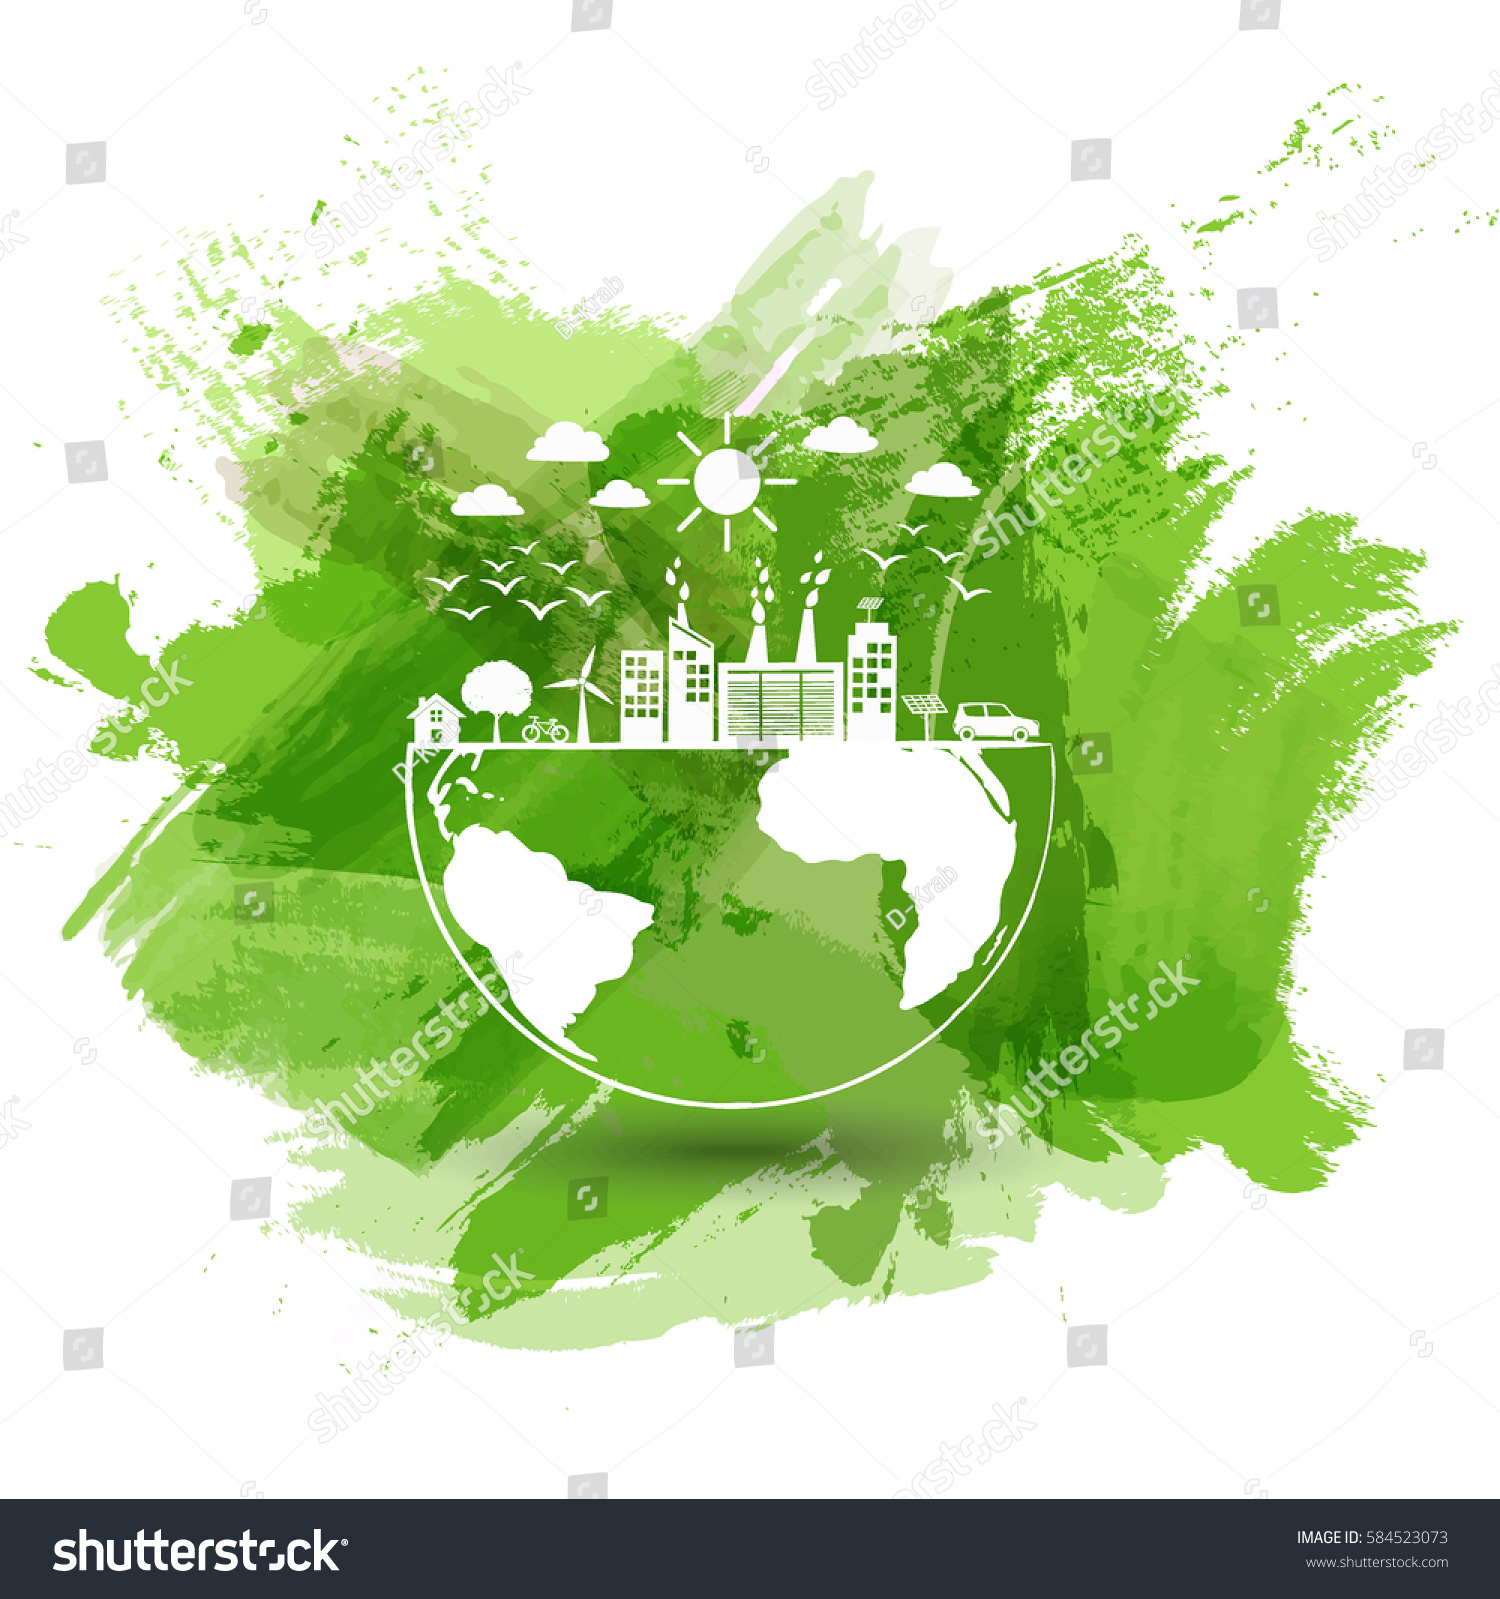 green city world eco friendly concept stock vector 584523073 shutterstock. Black Bedroom Furniture Sets. Home Design Ideas